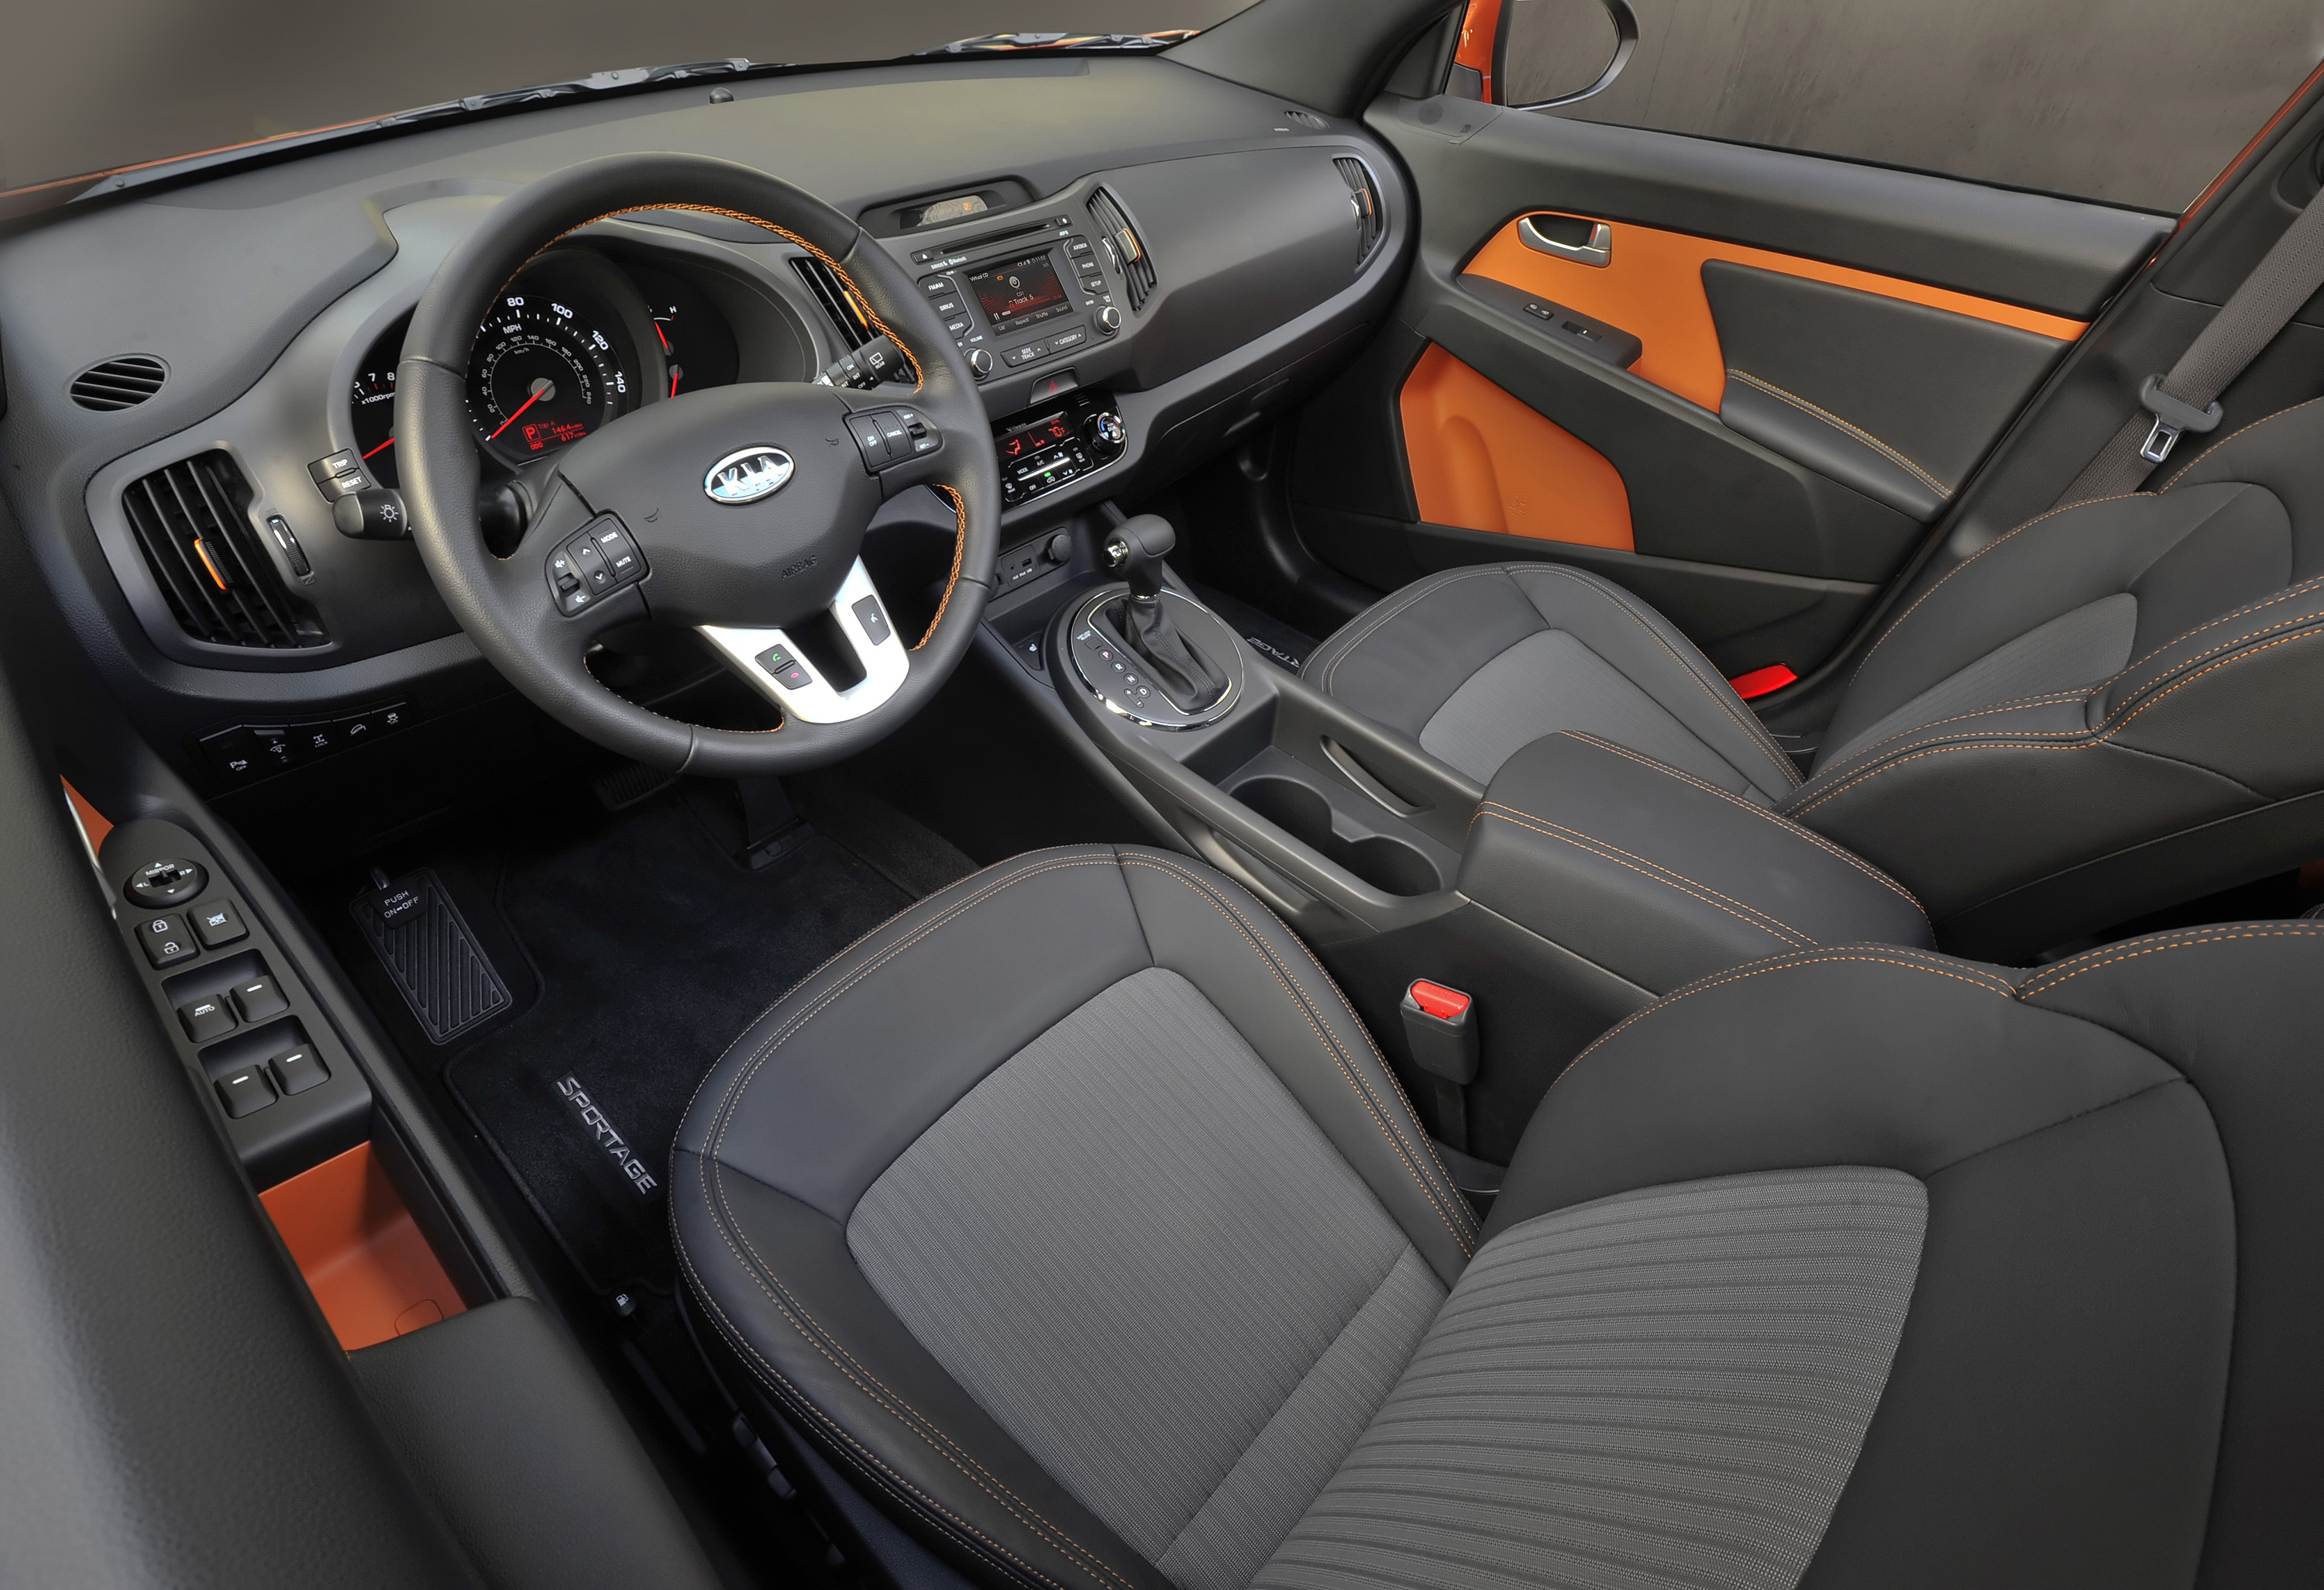 Kia Uvo Update Download >> UVO in the 2011 Kia Sportage | Stories